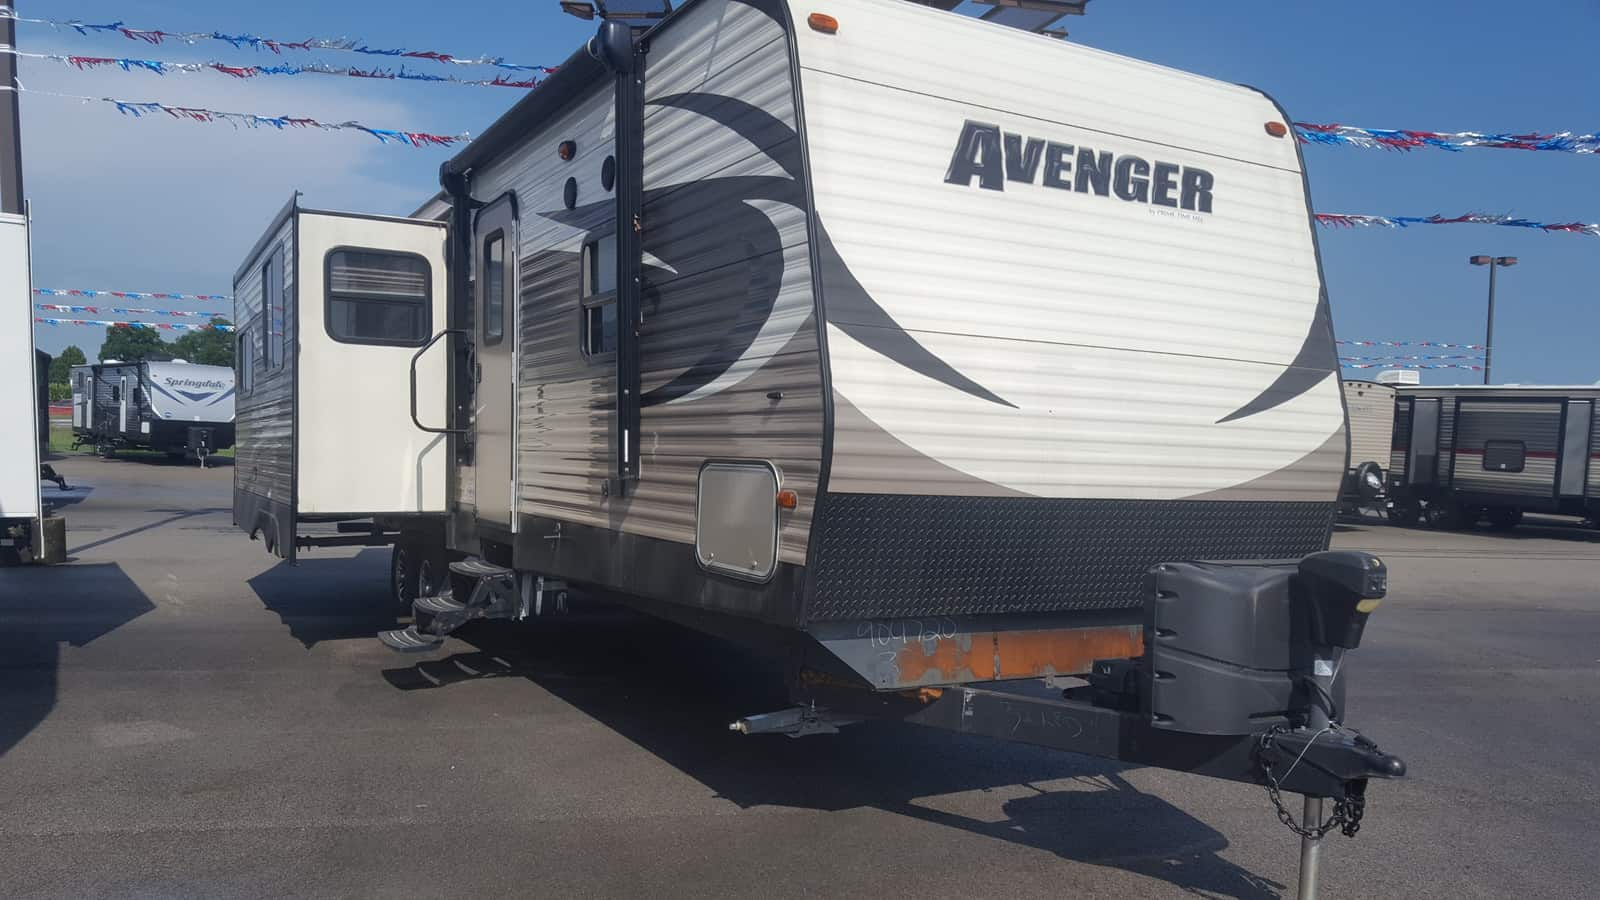 USED 2014 Prime Time AVENGER 32RED - American RV